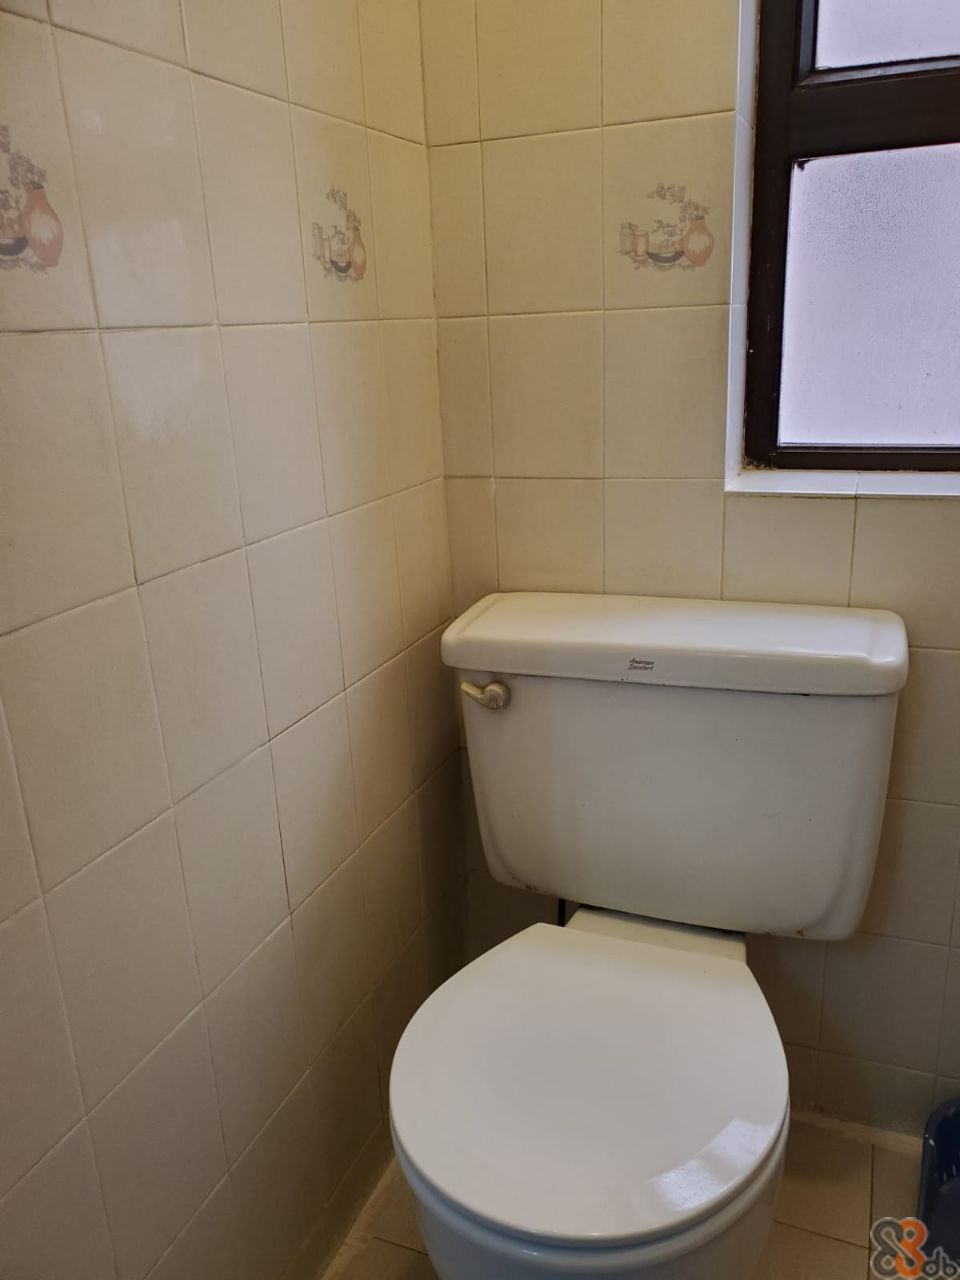 Toilet,Bathroom,Toilet seat,Property,Wall